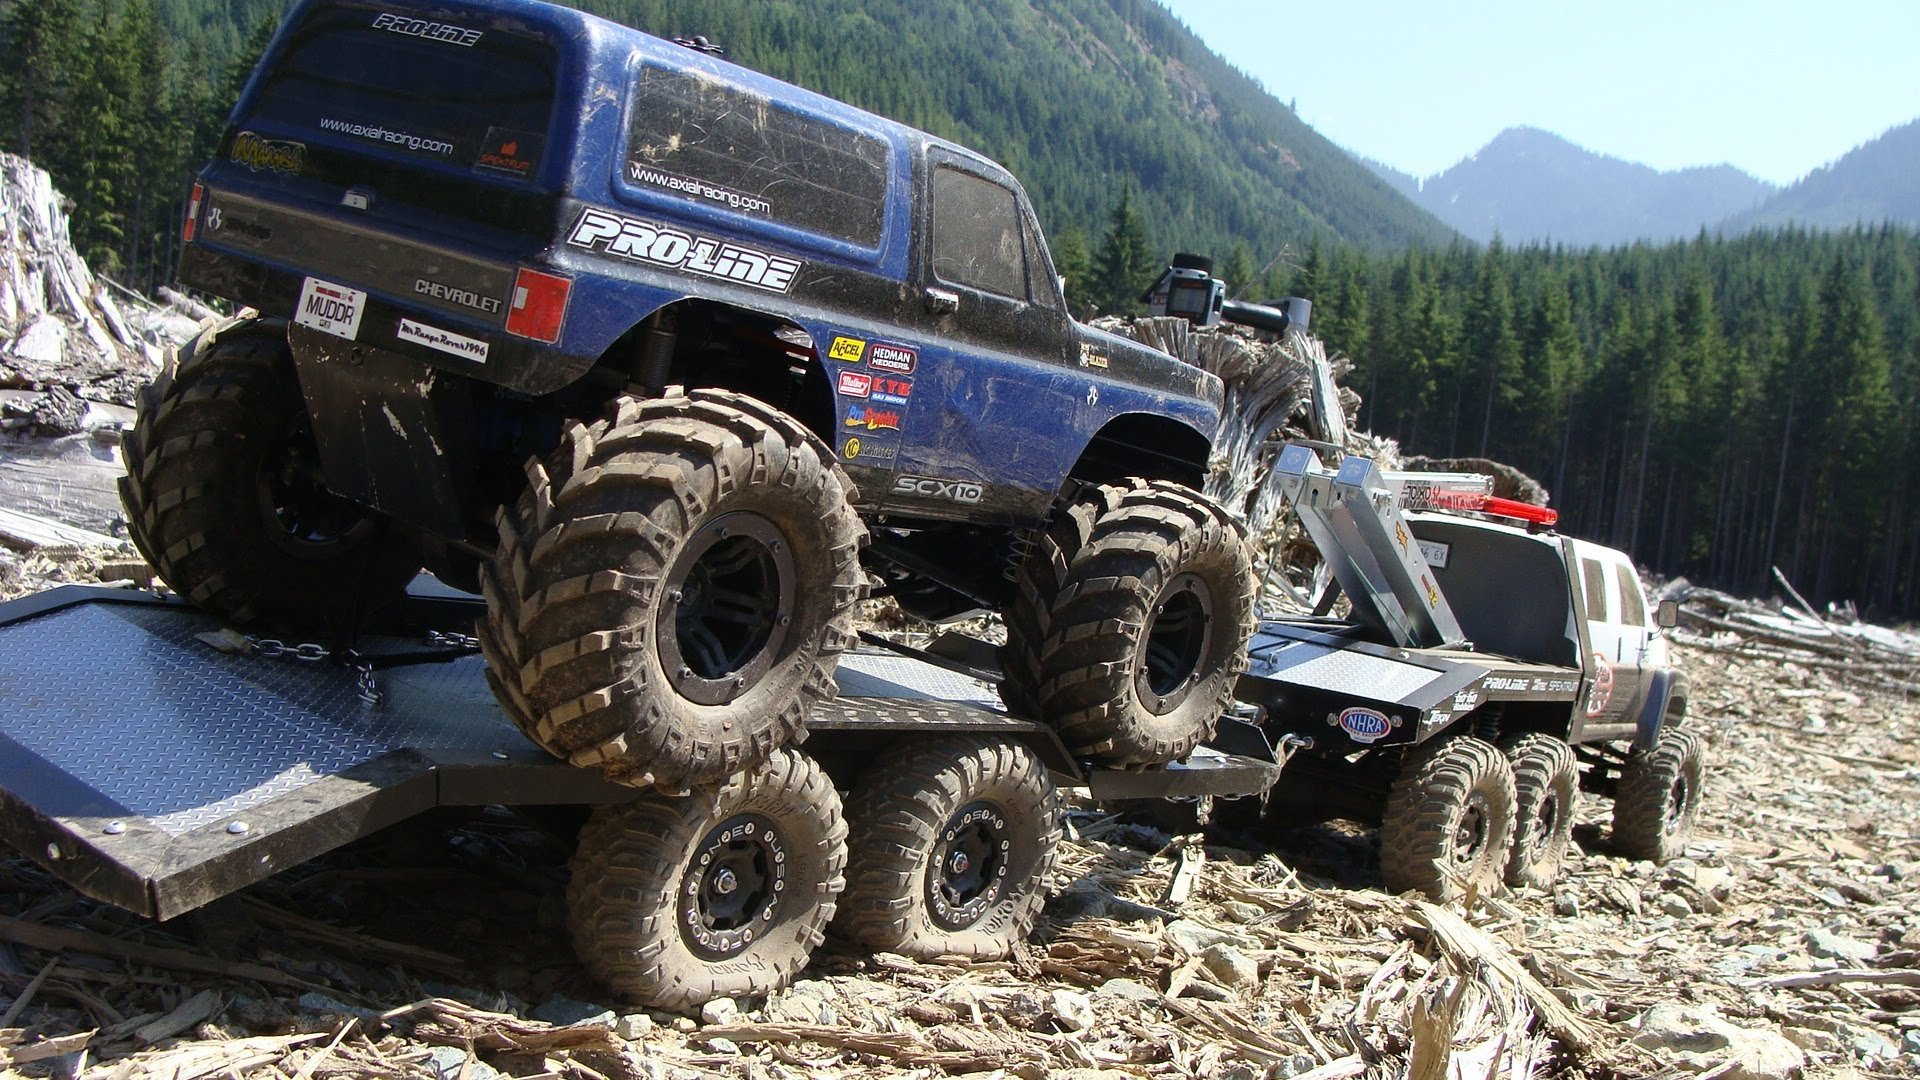 rc off road trucks 4x4 with 4x4 Offroad Truck Custom on Watch in addition Vtr03014 besides Watch likewise Traxxas Telluride 4x4 Extreme Terrain Trail Rig in addition Traxxas Goes Retro Bigfoot 1.